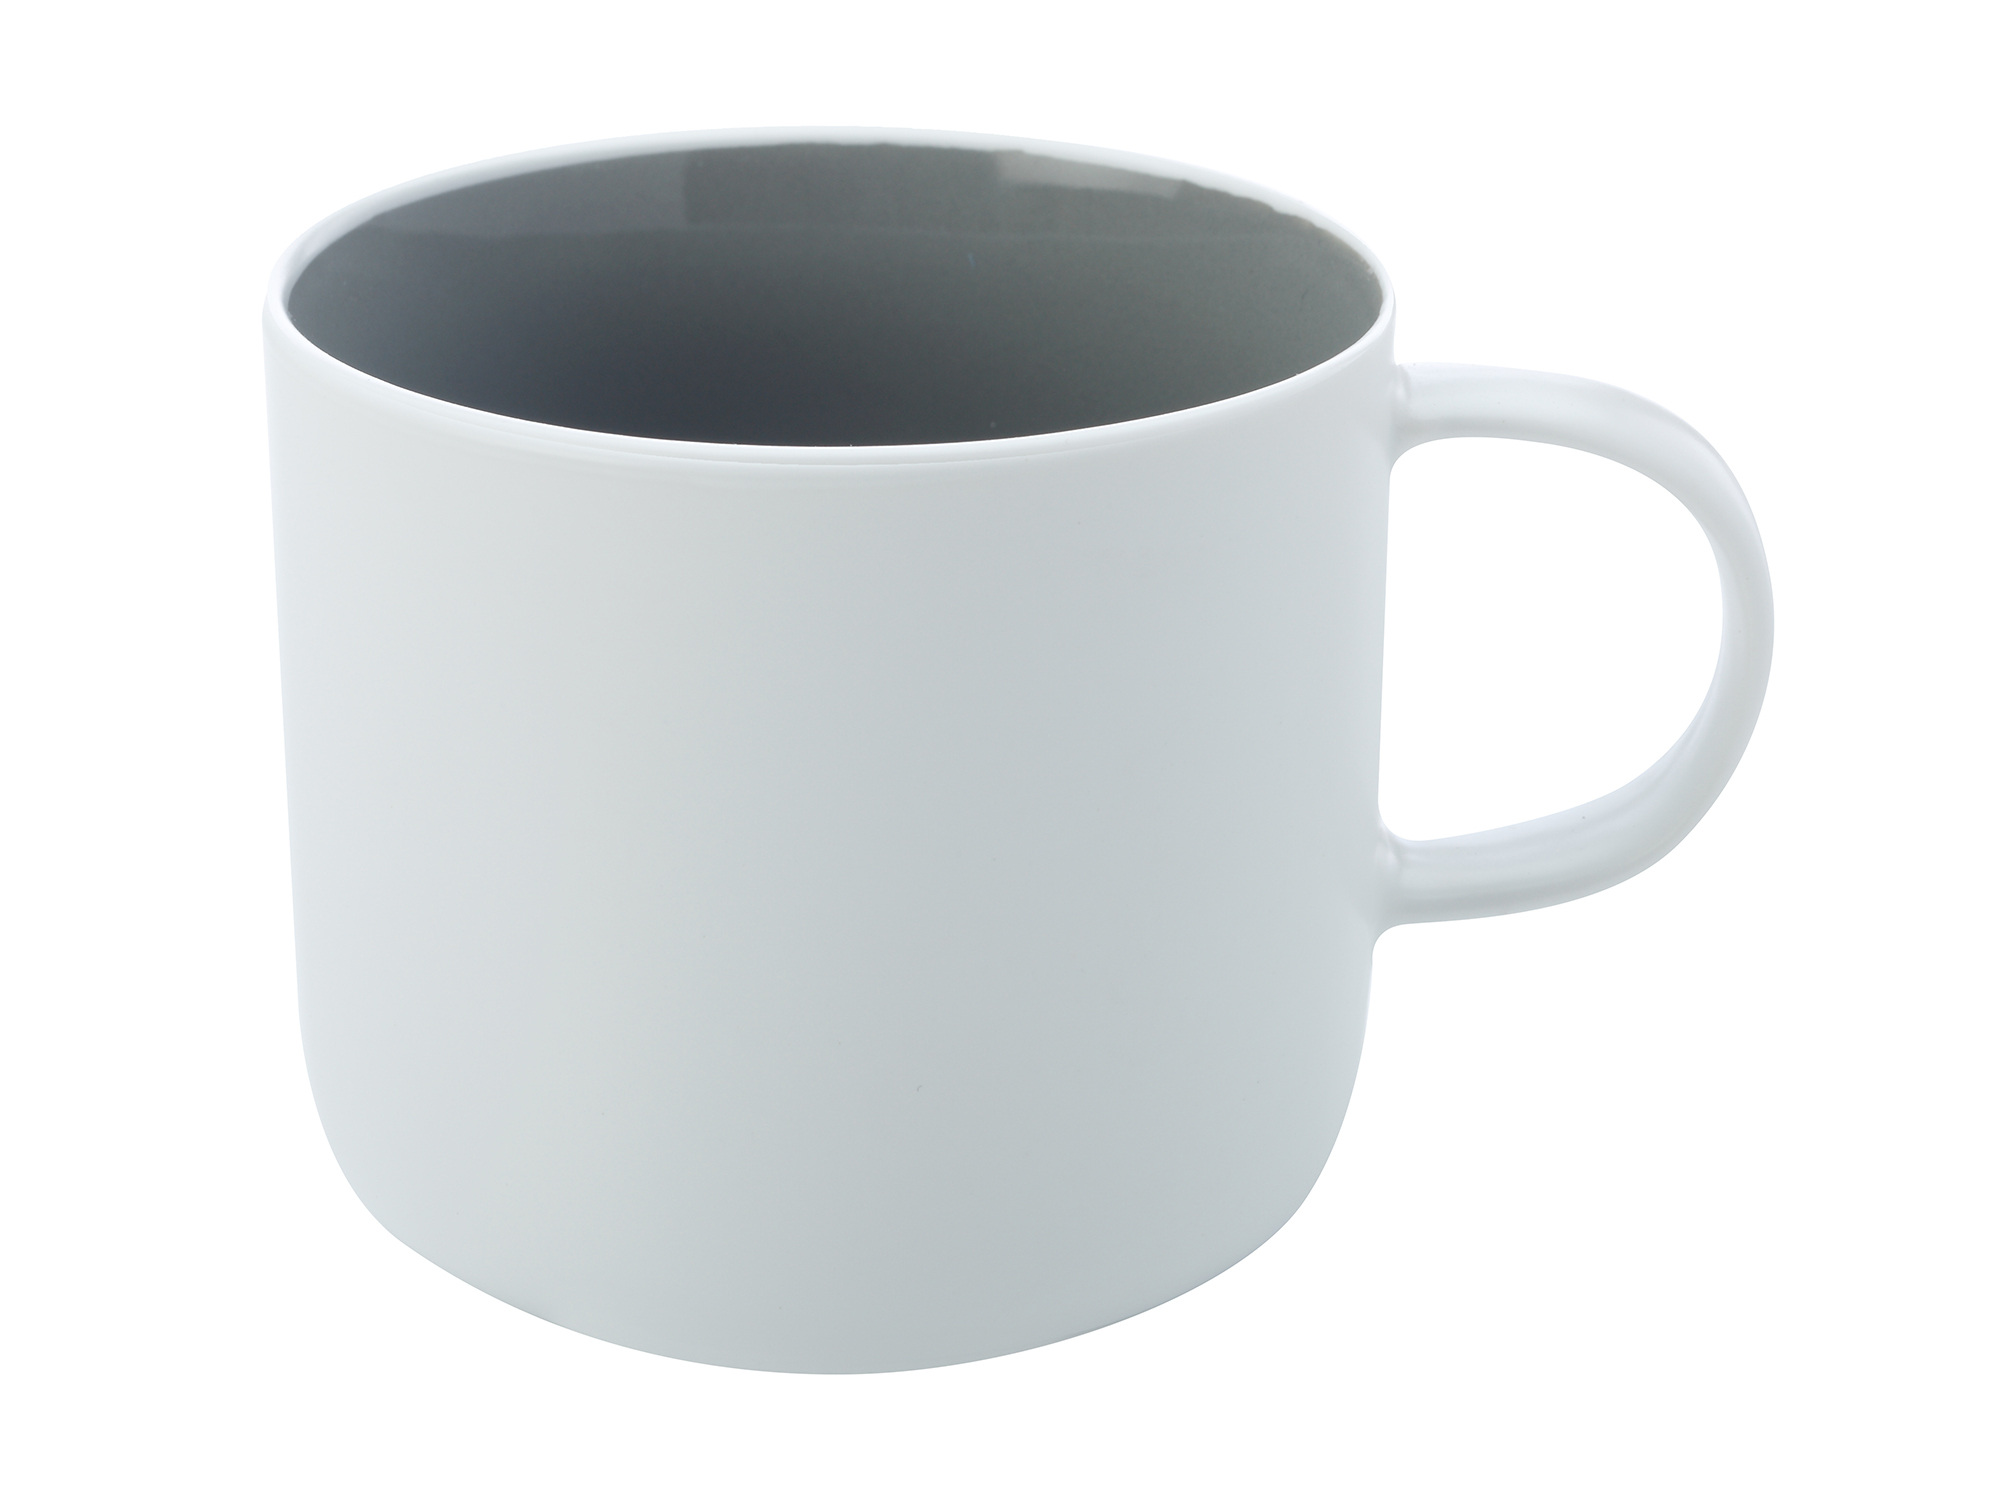 Maxwell & Williams Tint 440Ml Mug Charcoal